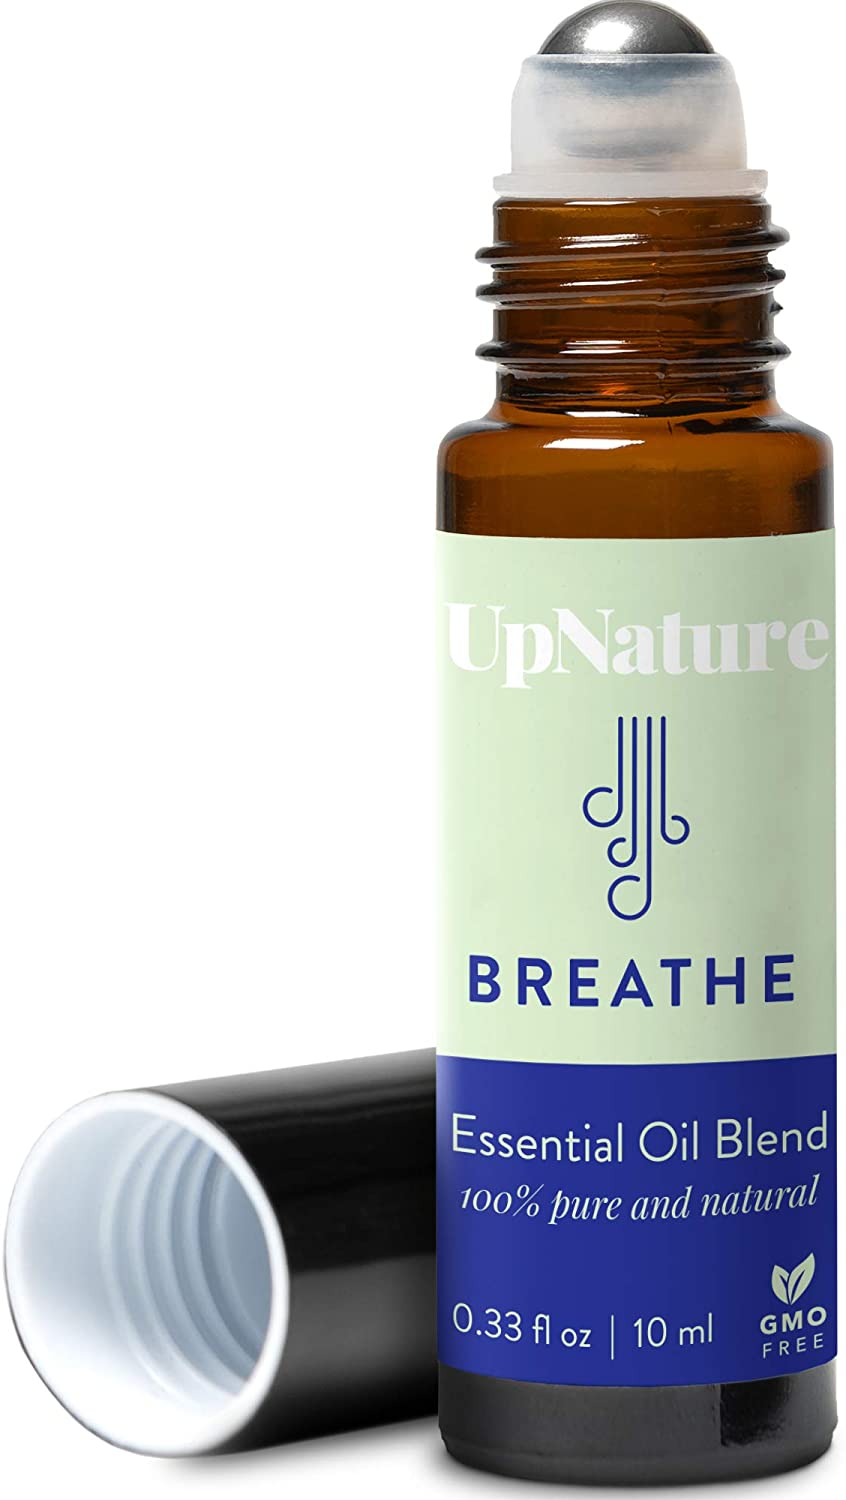 Breathe Essential Oil Blend Roll-On - Peppermint & Eucalyptus Oil Blend - Breathe Easier - Allergy & Sinus Relief Roller - Quality Leak-Proof Rollerball - No Diffuser Needed!